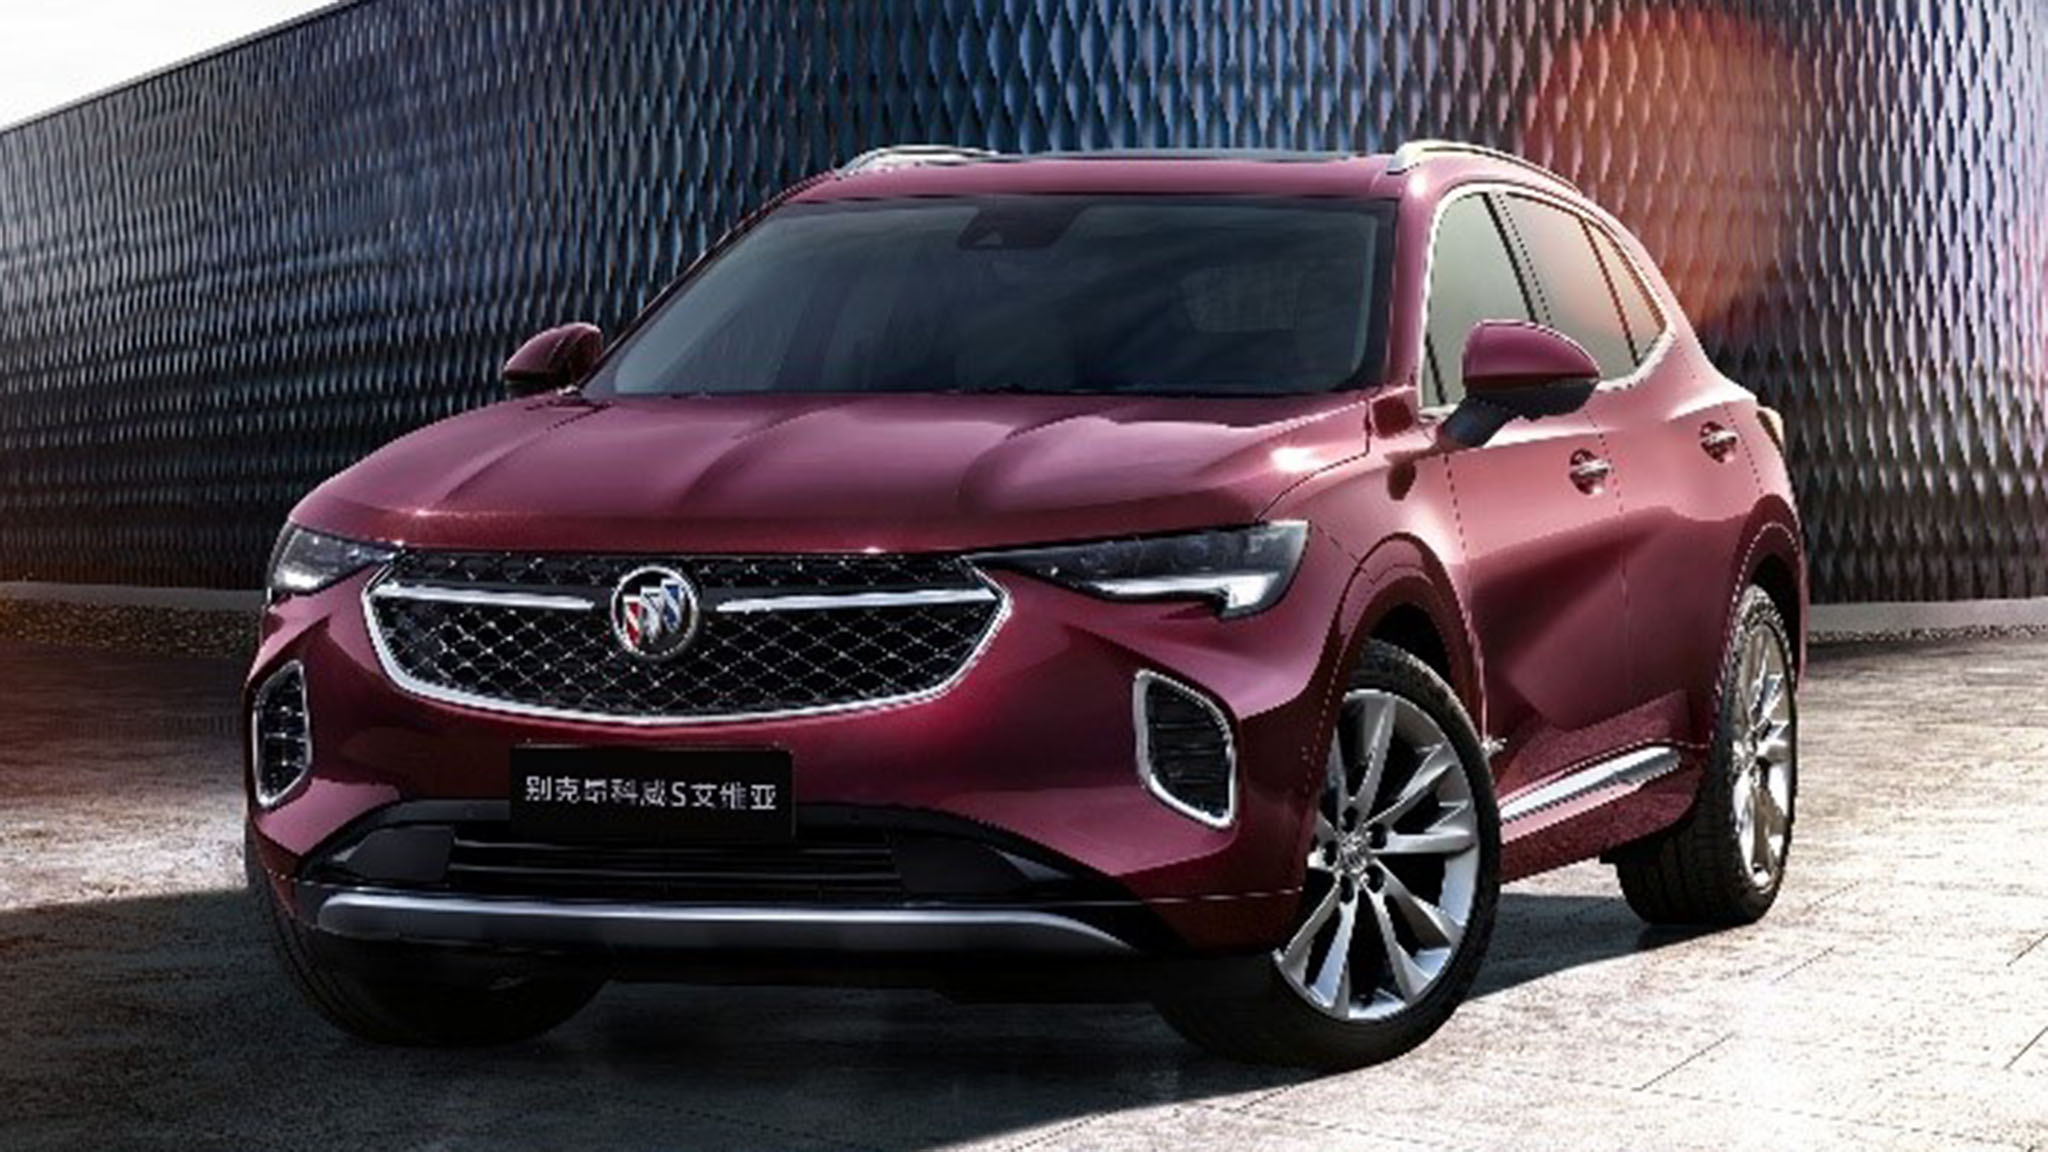 2021 Buick Envision Avenir Is Coming, As Previewedthe 2021 Buick Cascada Pictures, Remote Start, Release